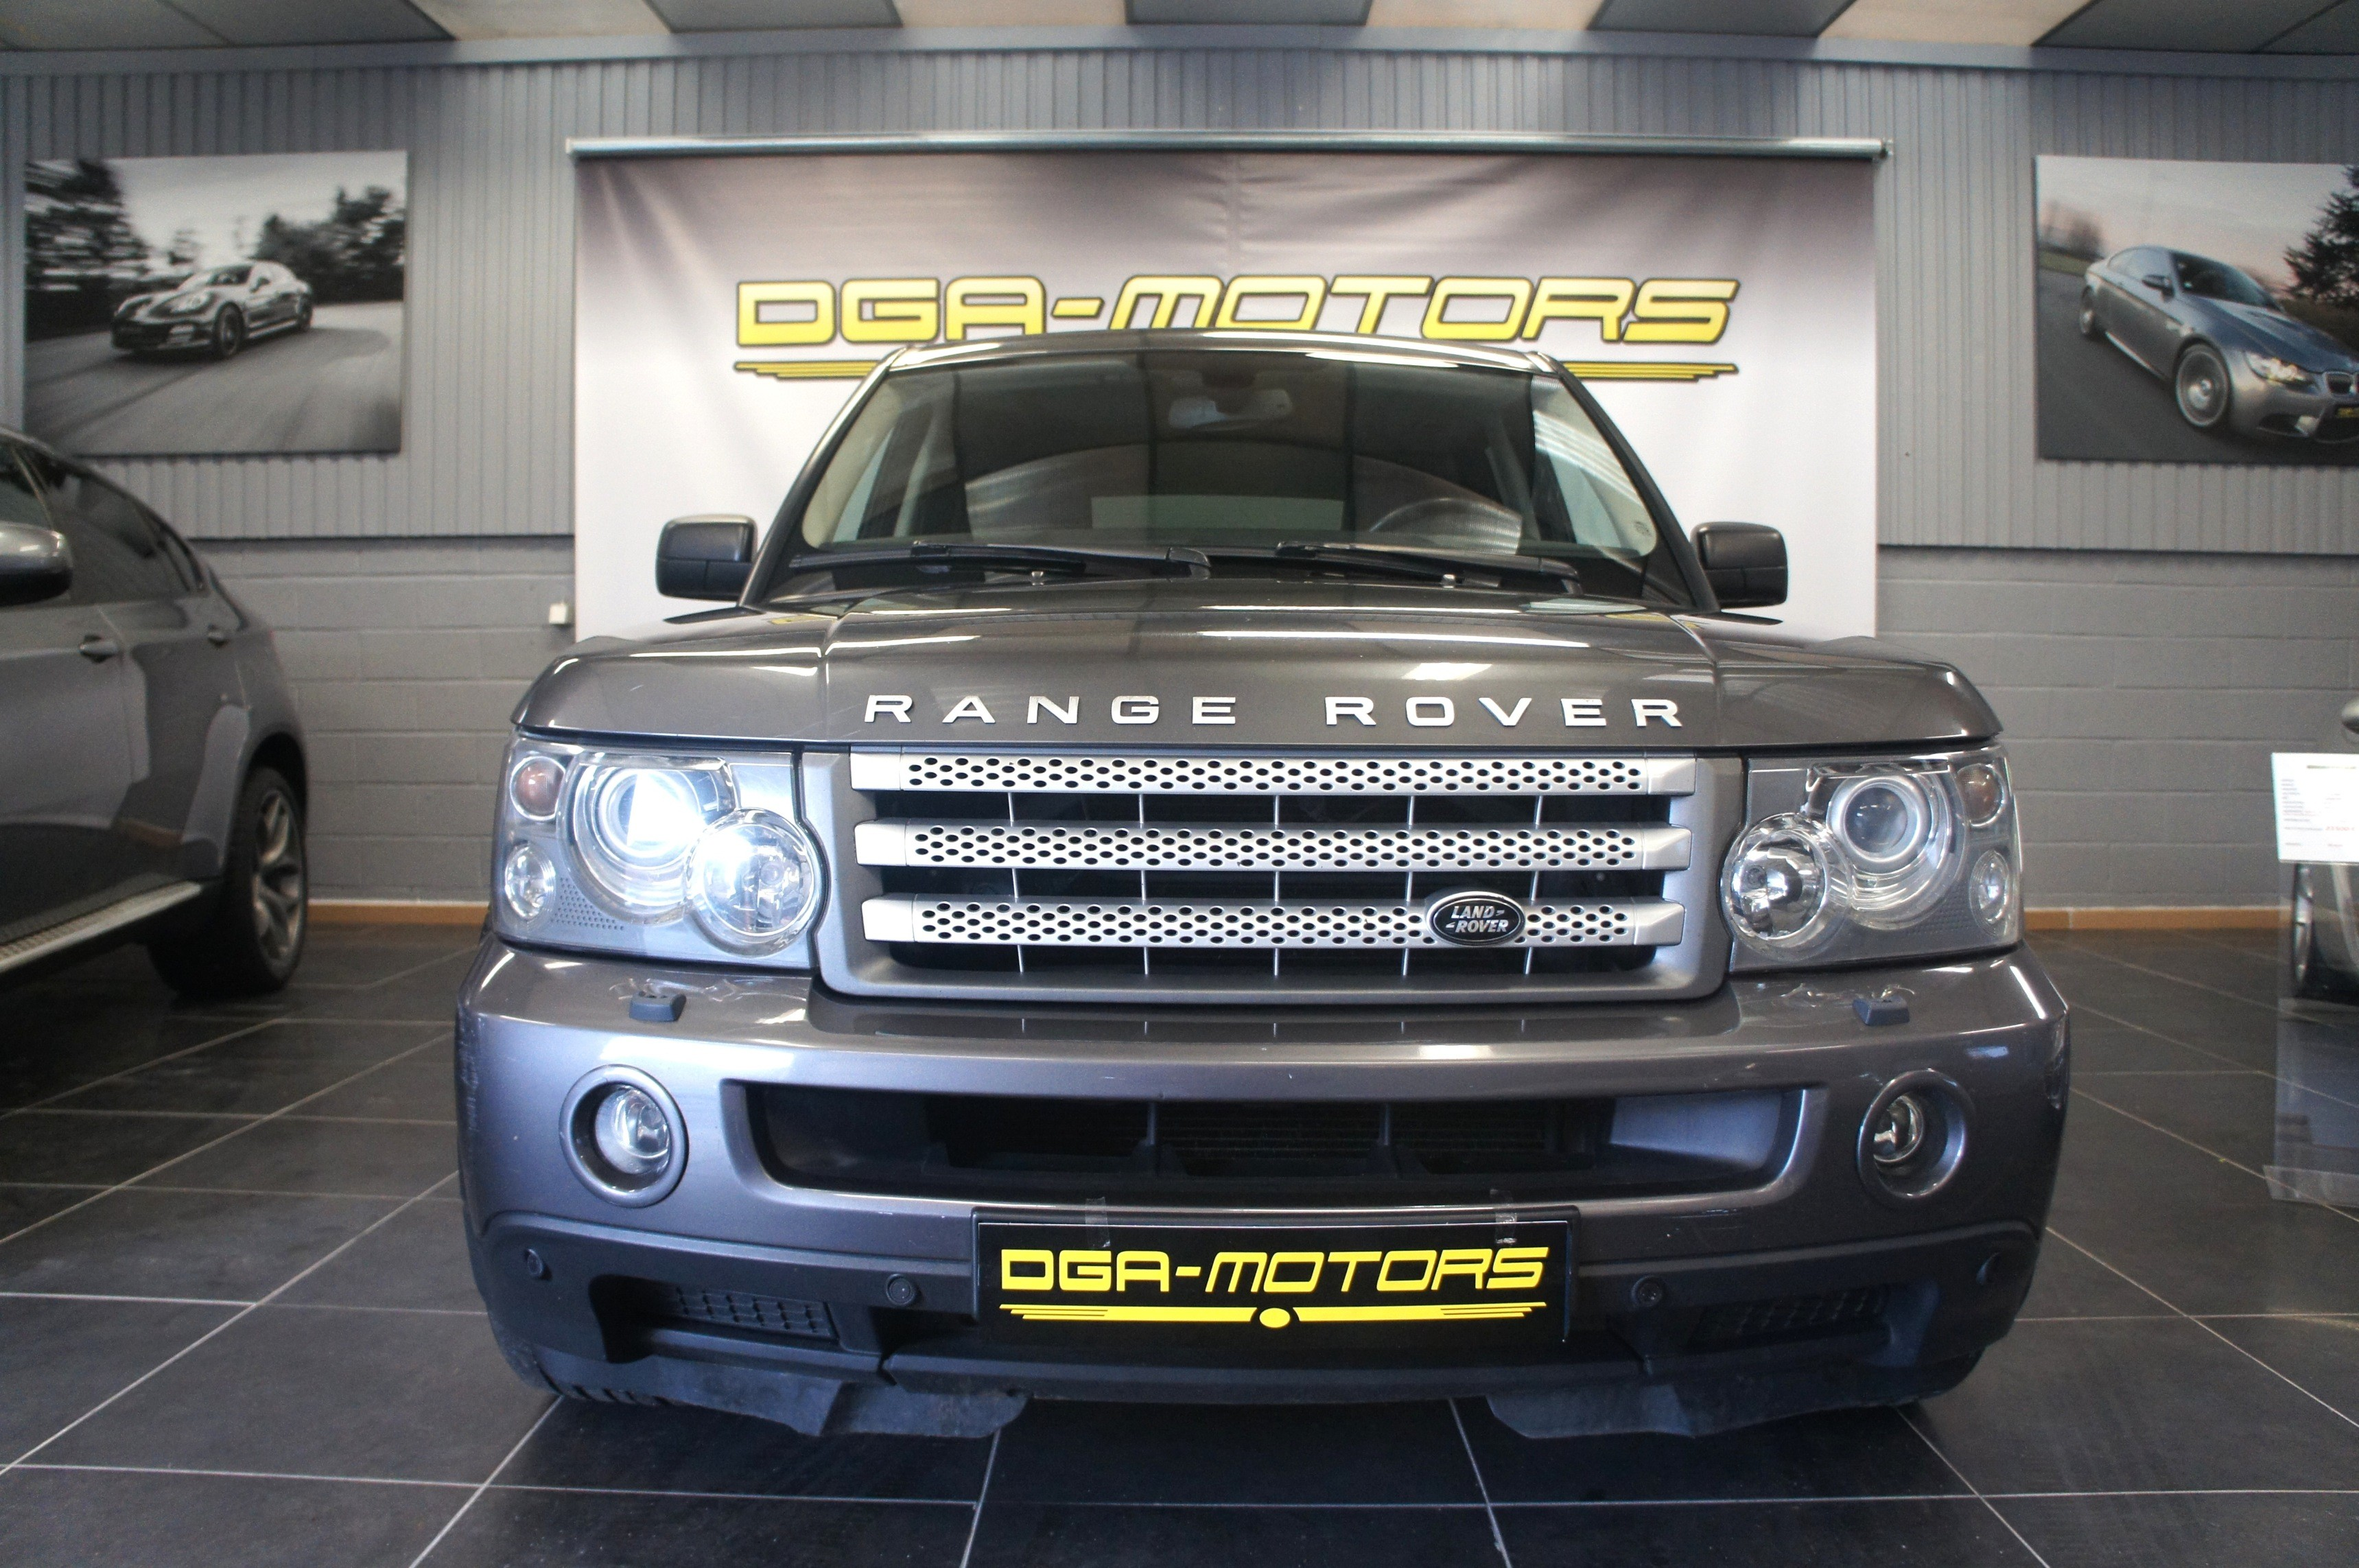 range rover sport hse dga motors valenciennes marly. Black Bedroom Furniture Sets. Home Design Ideas